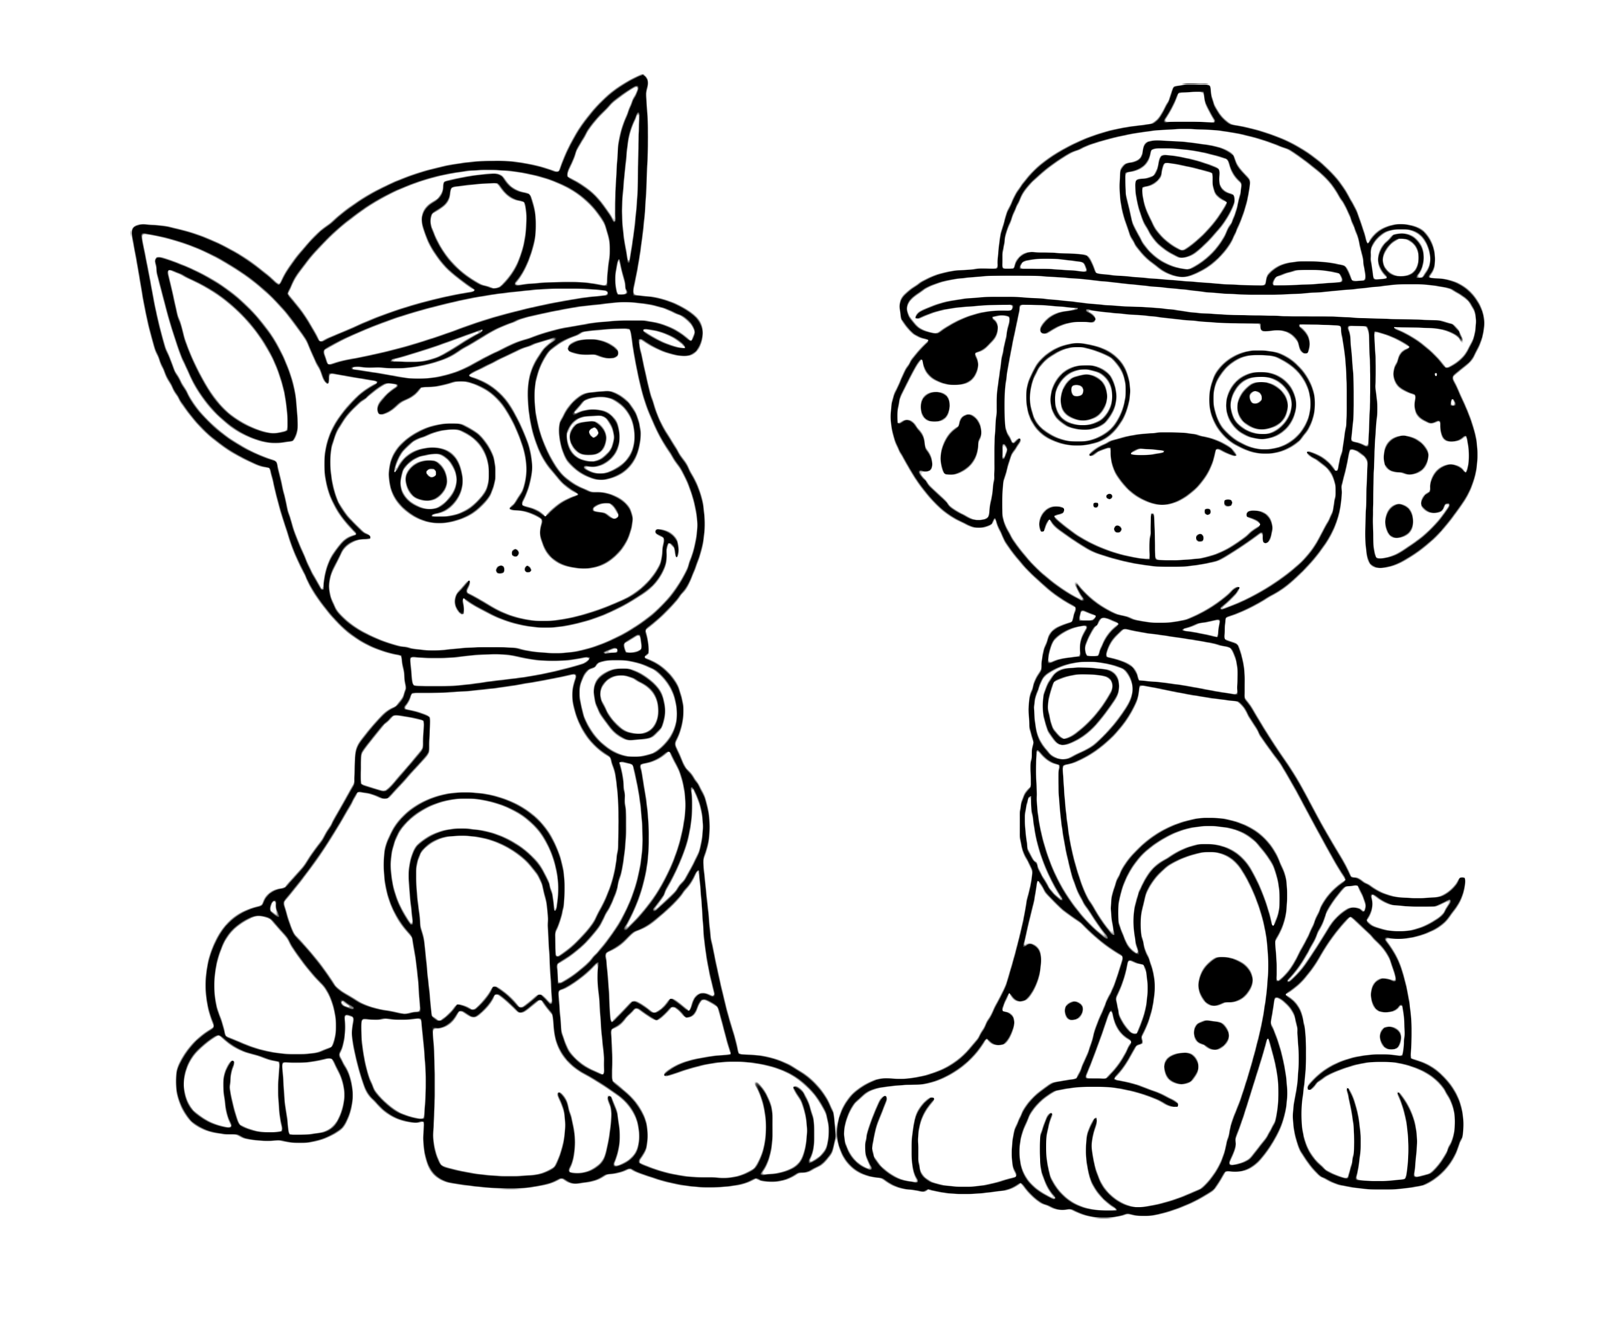 Paw Patrol Marshall Drawing at GetDrawings.com | Free for ...